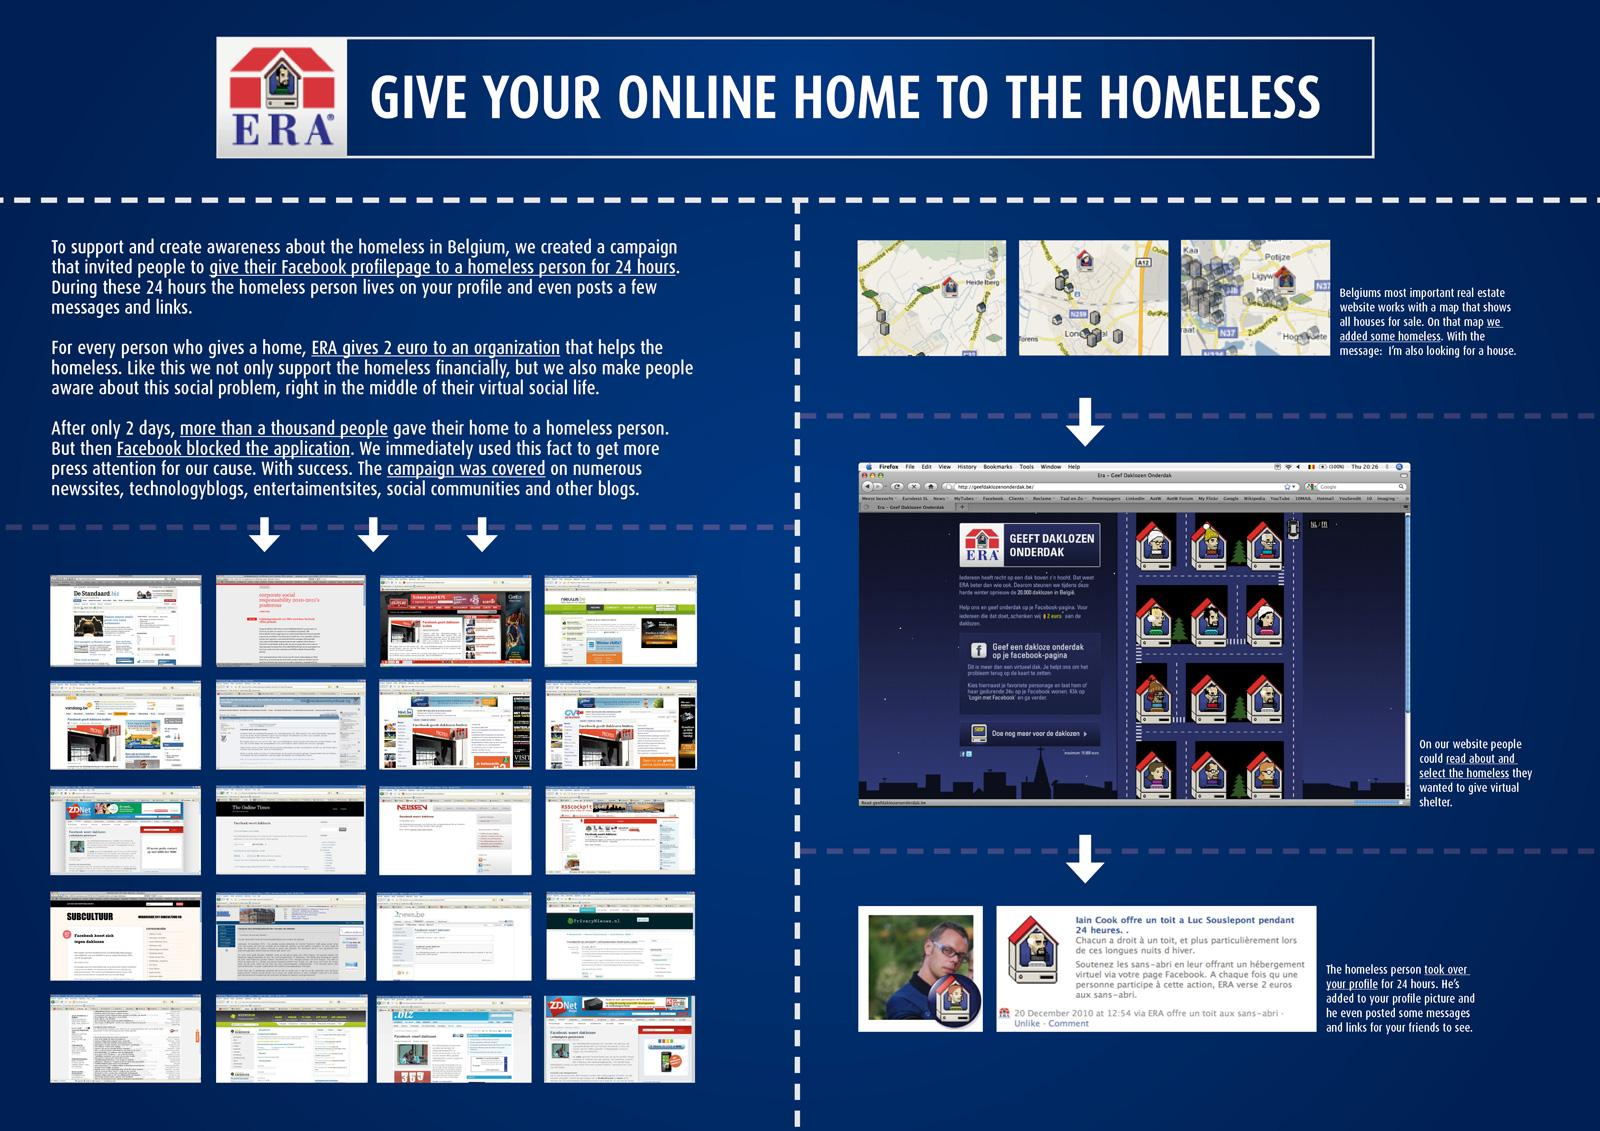 ERA Digital Ad -  Give your online home to the homeless